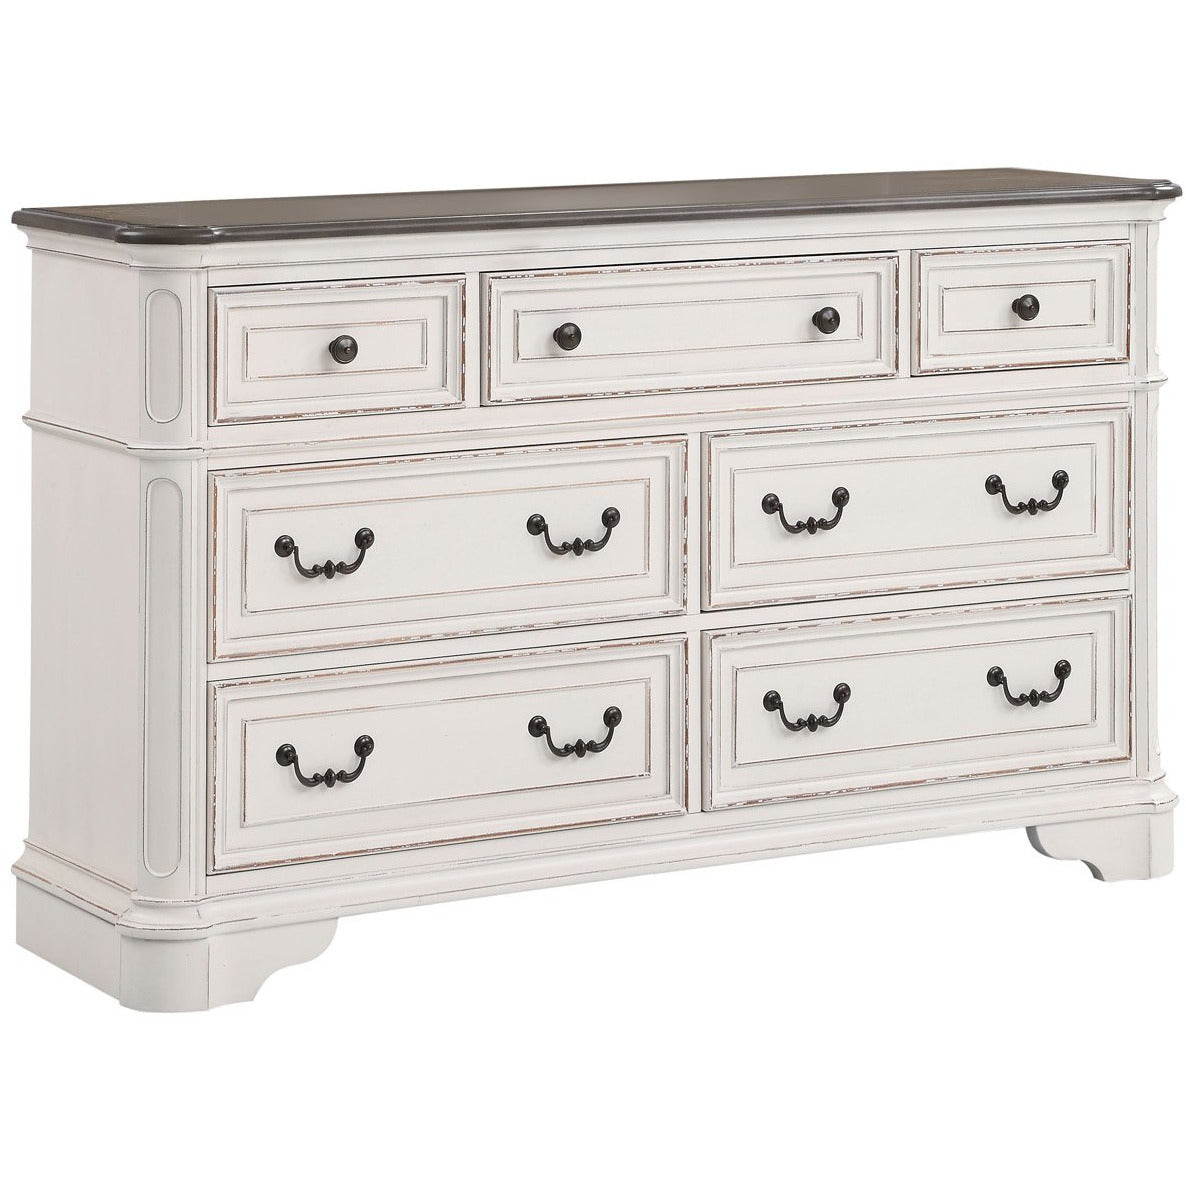 Rose Cottage Dresser